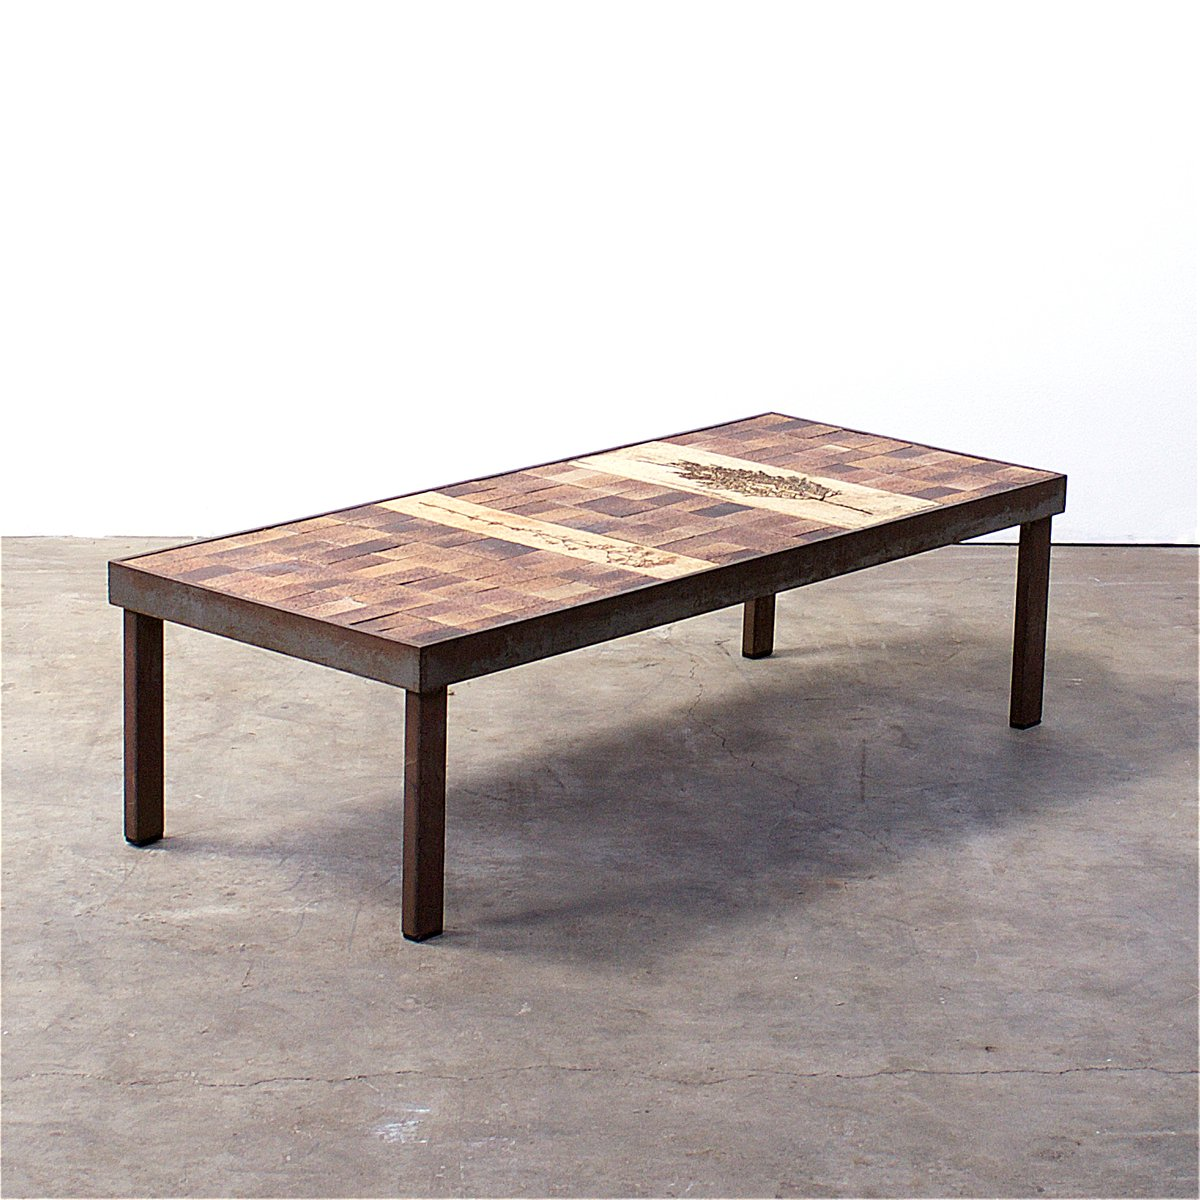 Coffee Table 1950s: Coffee Table By Roger Capron, 1950s For Sale At Pamono